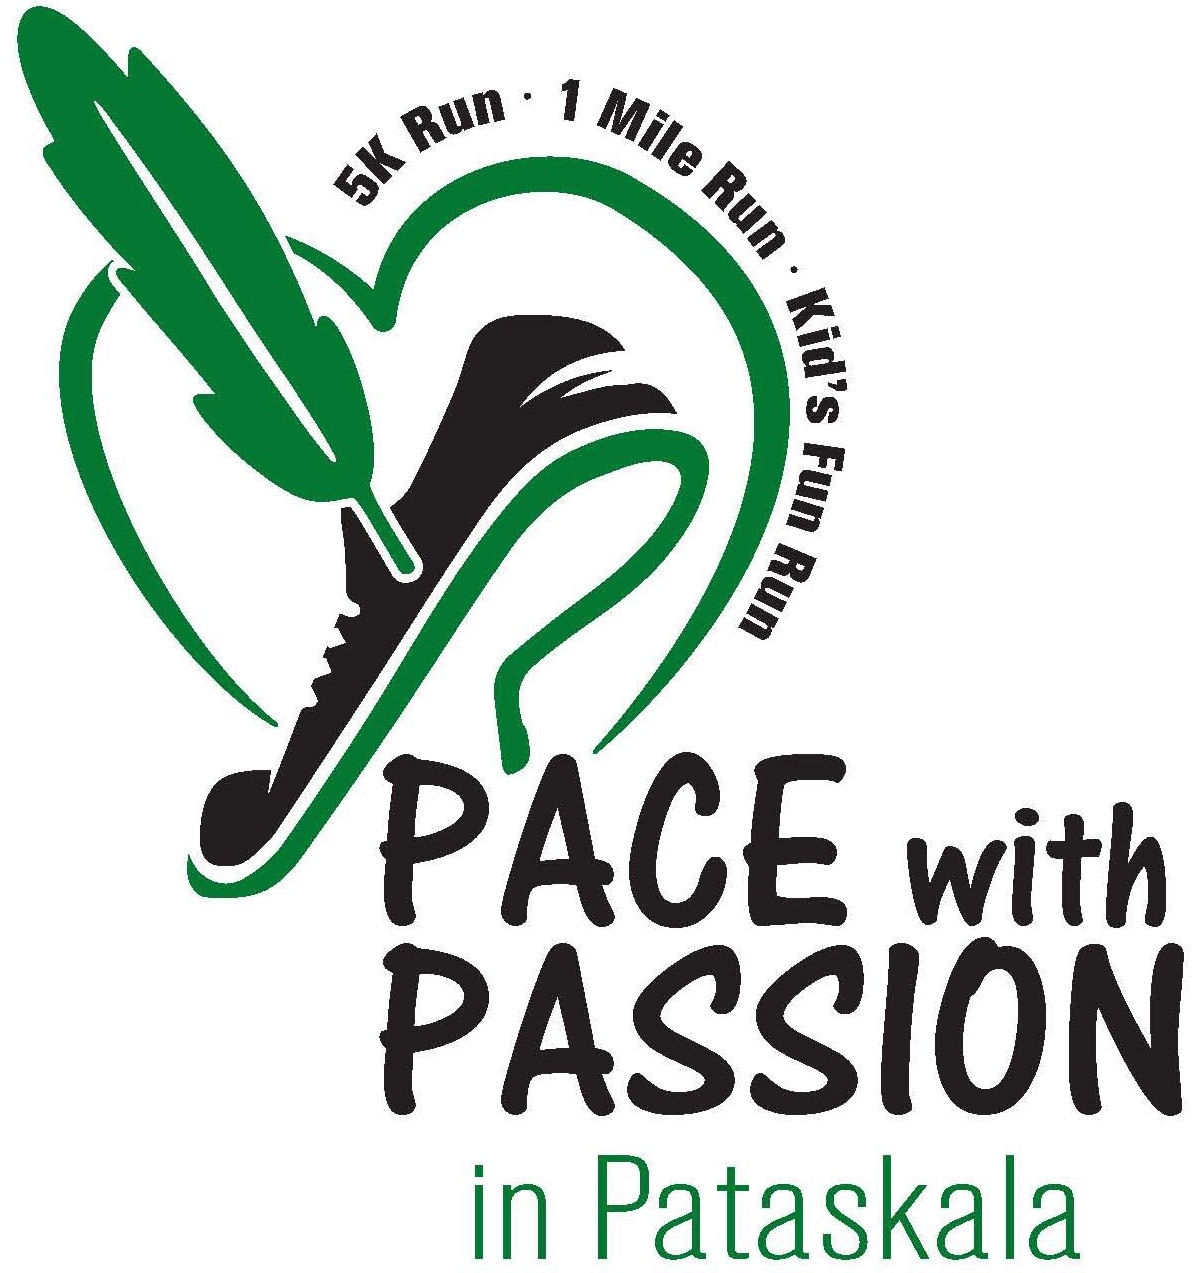 Pataskala's Pace With Passion 5k, 1 mile and Kids Fun Run